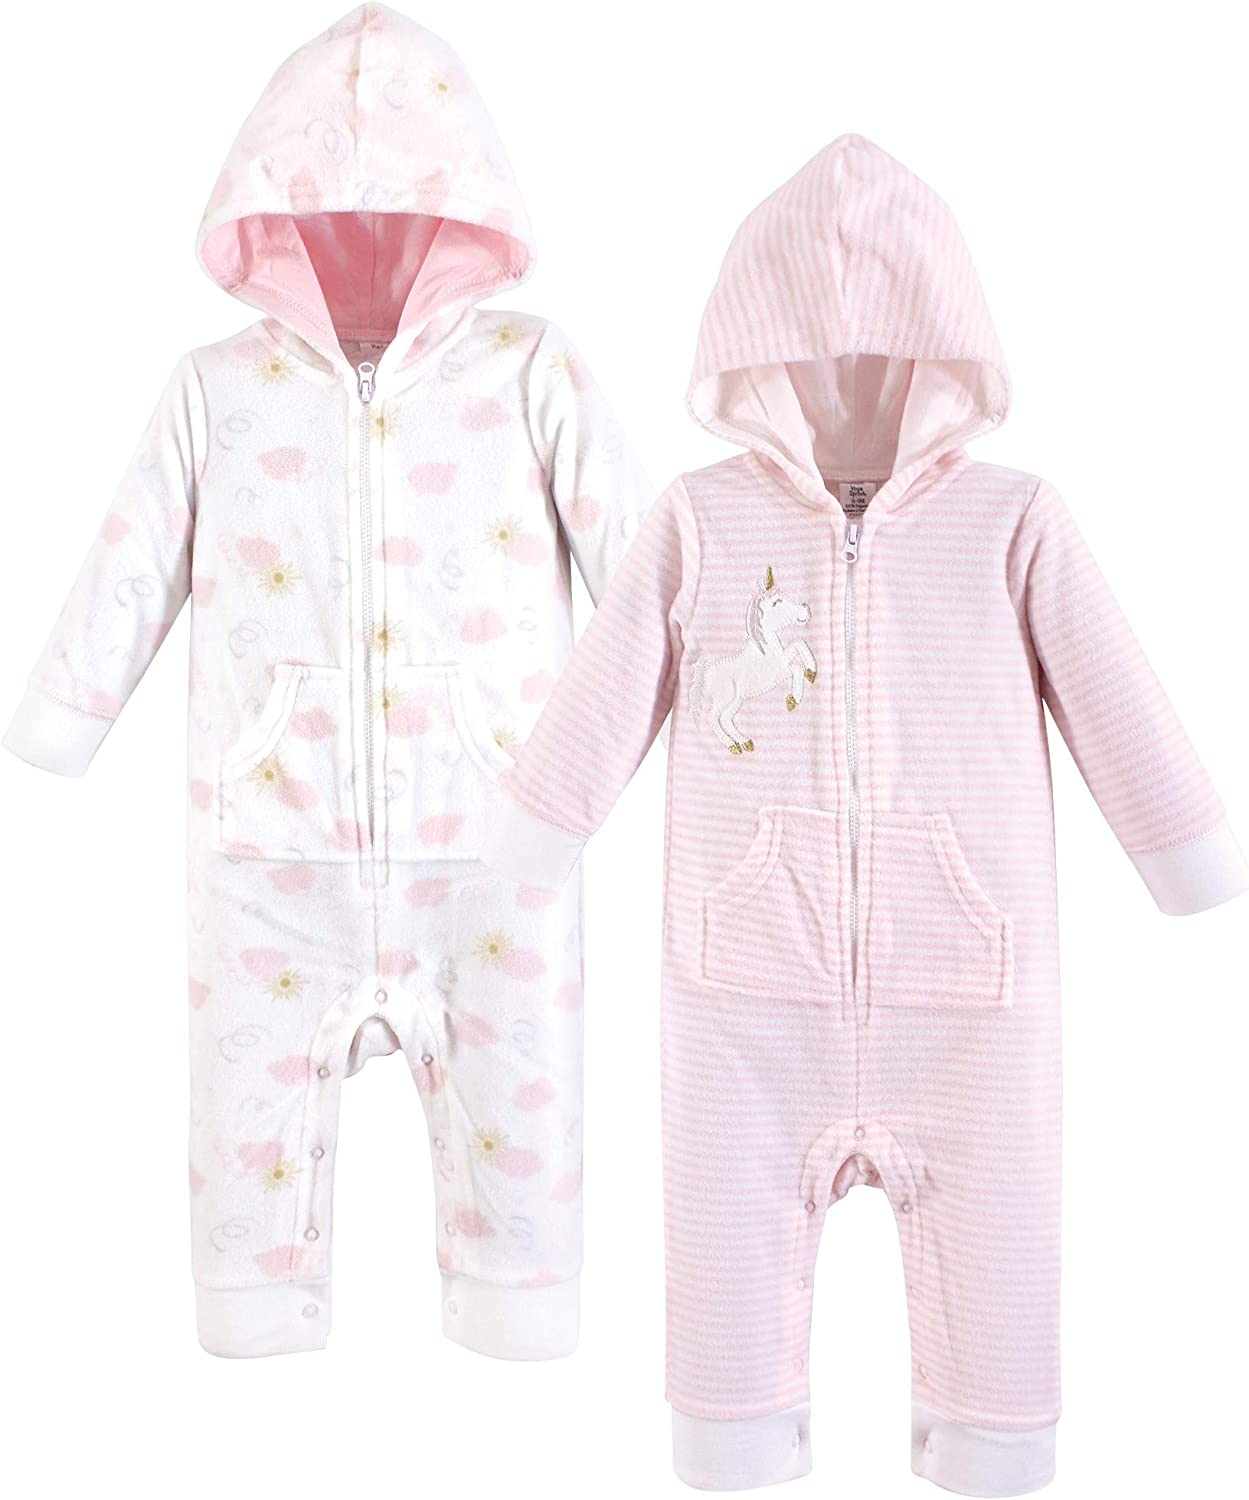 Yoga Sprout Baby Girls Hooded Fleece Jumpsuits